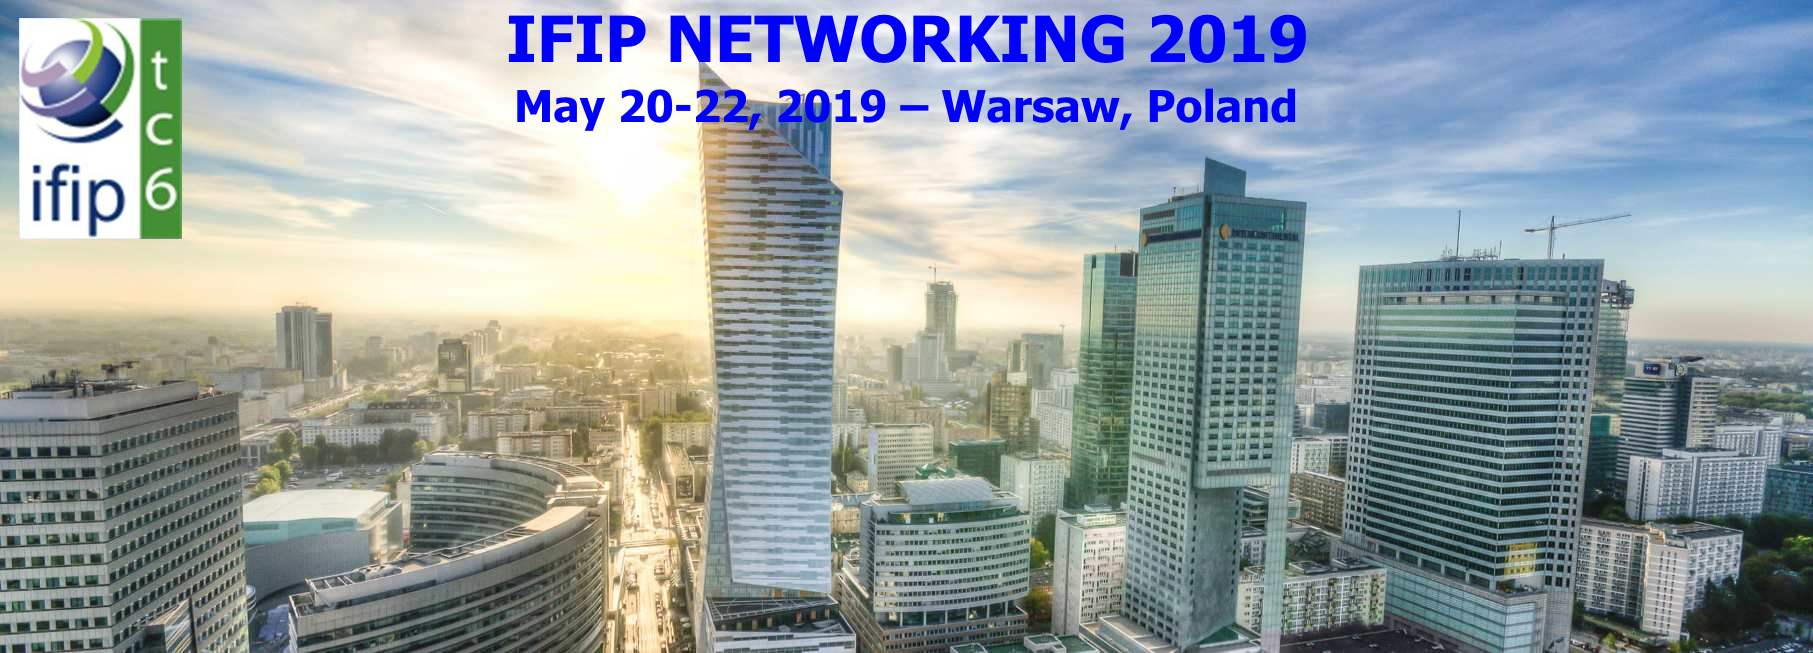 Networking 2019